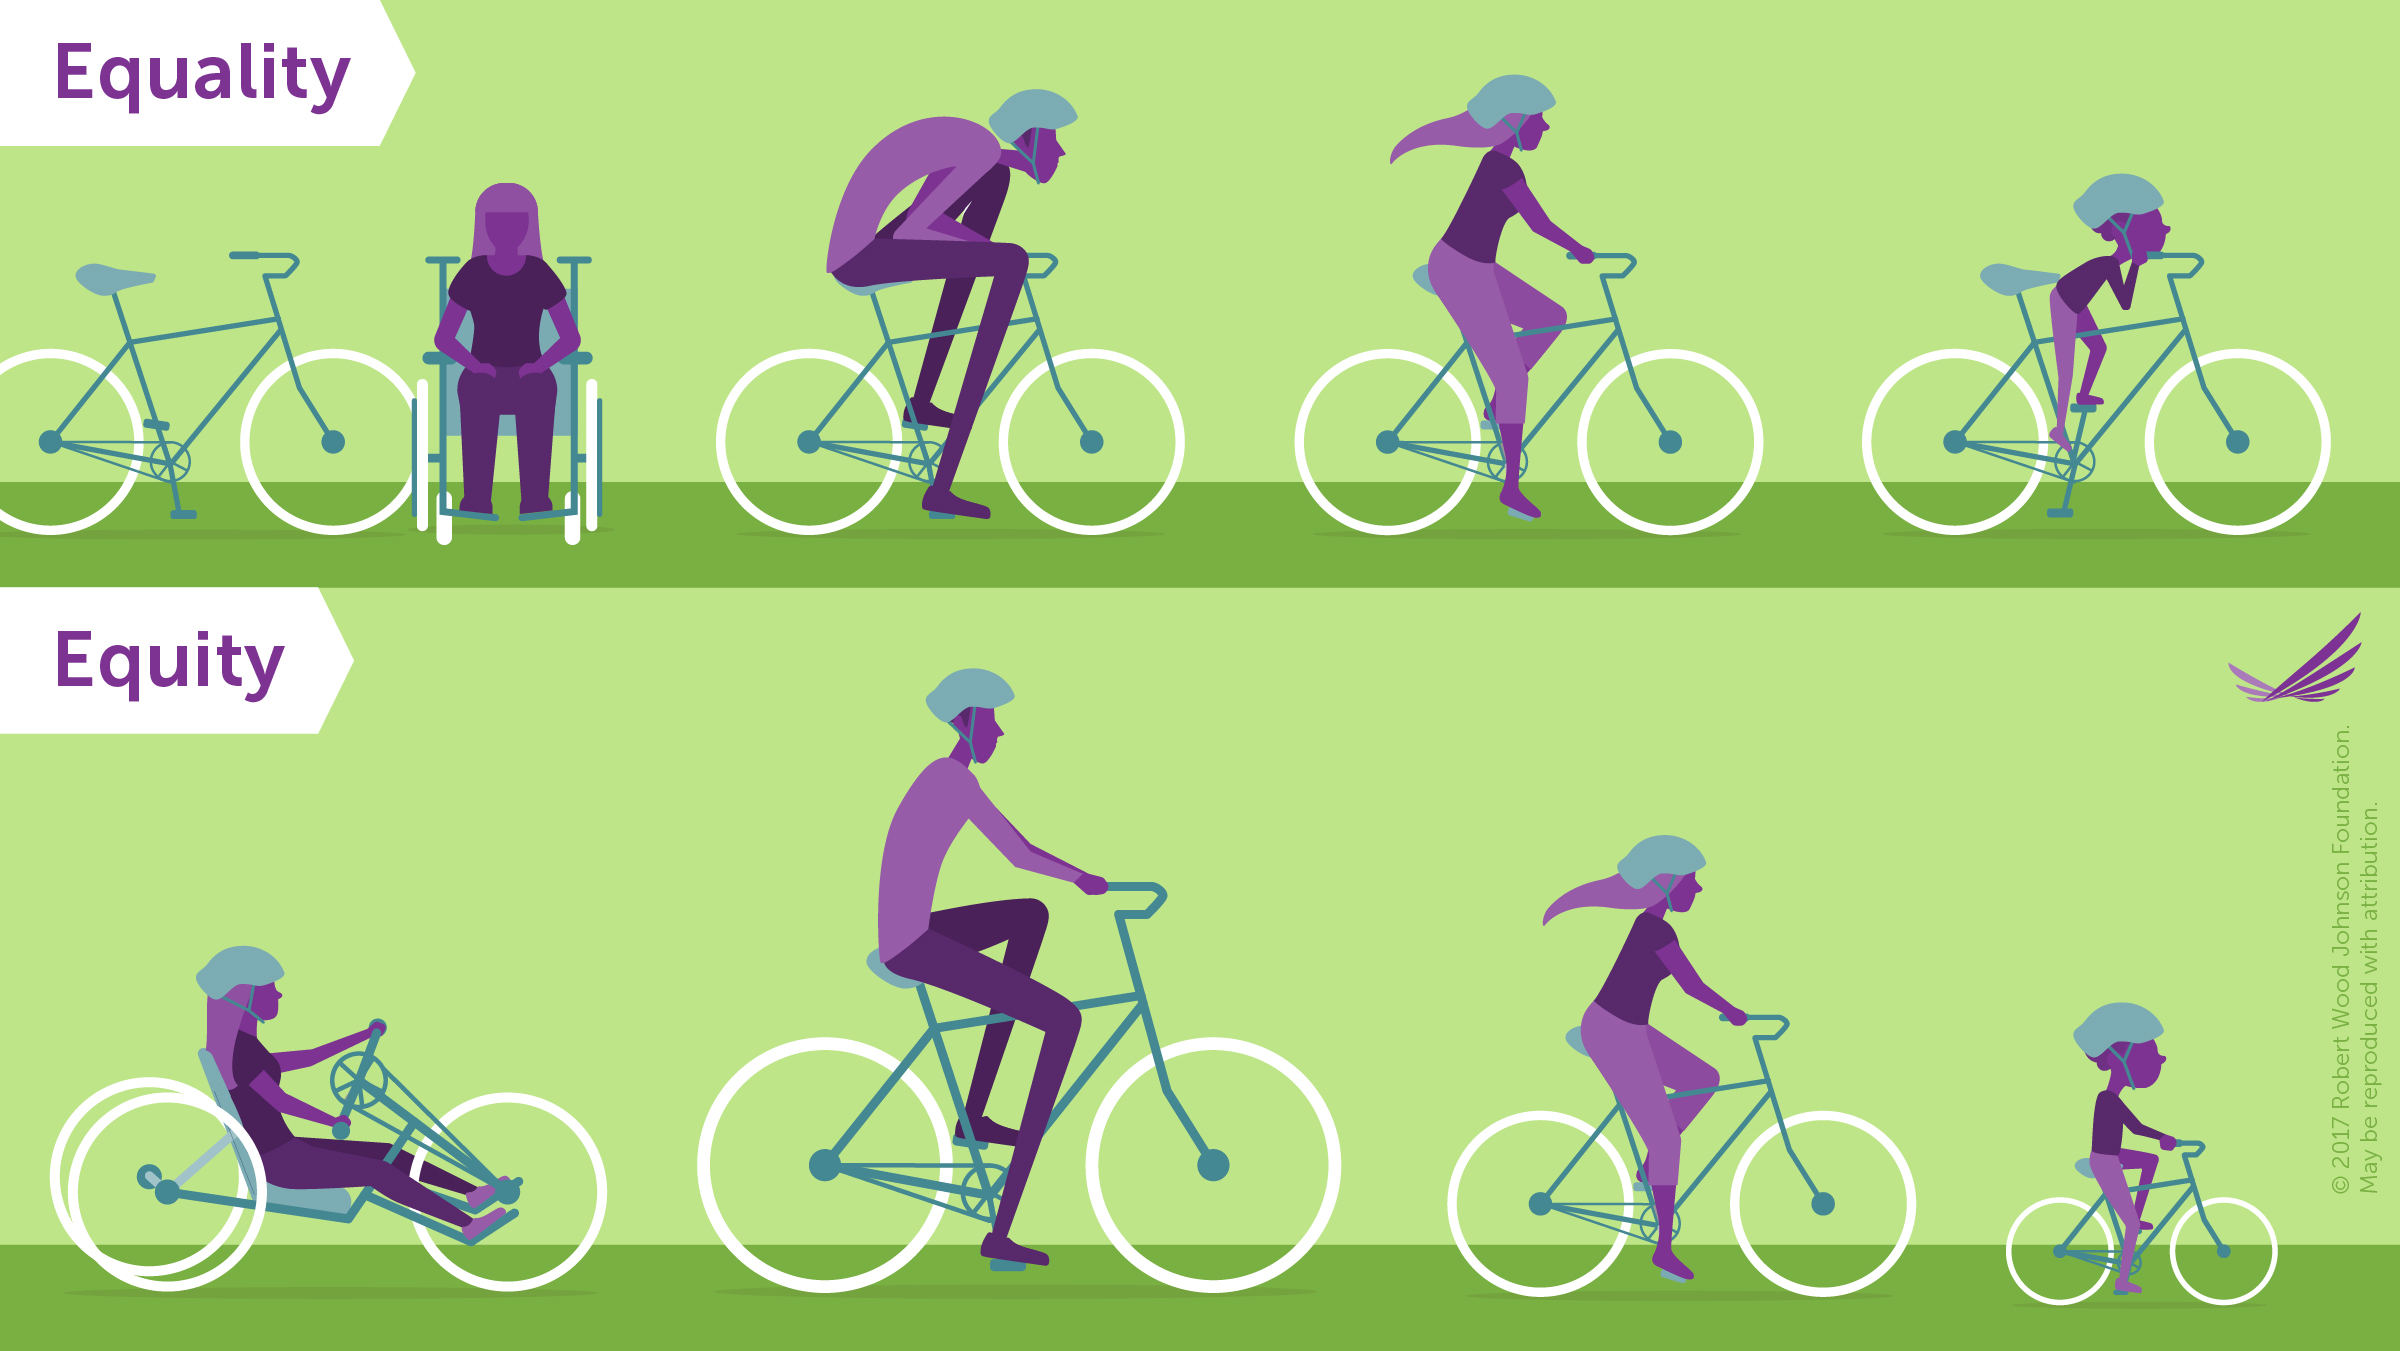 English, green background.Equity versus equality bicycle example. With equality, the bikes are the same but don't fit all four riders' needs. With equity, each rider has a bike to fit their needs.